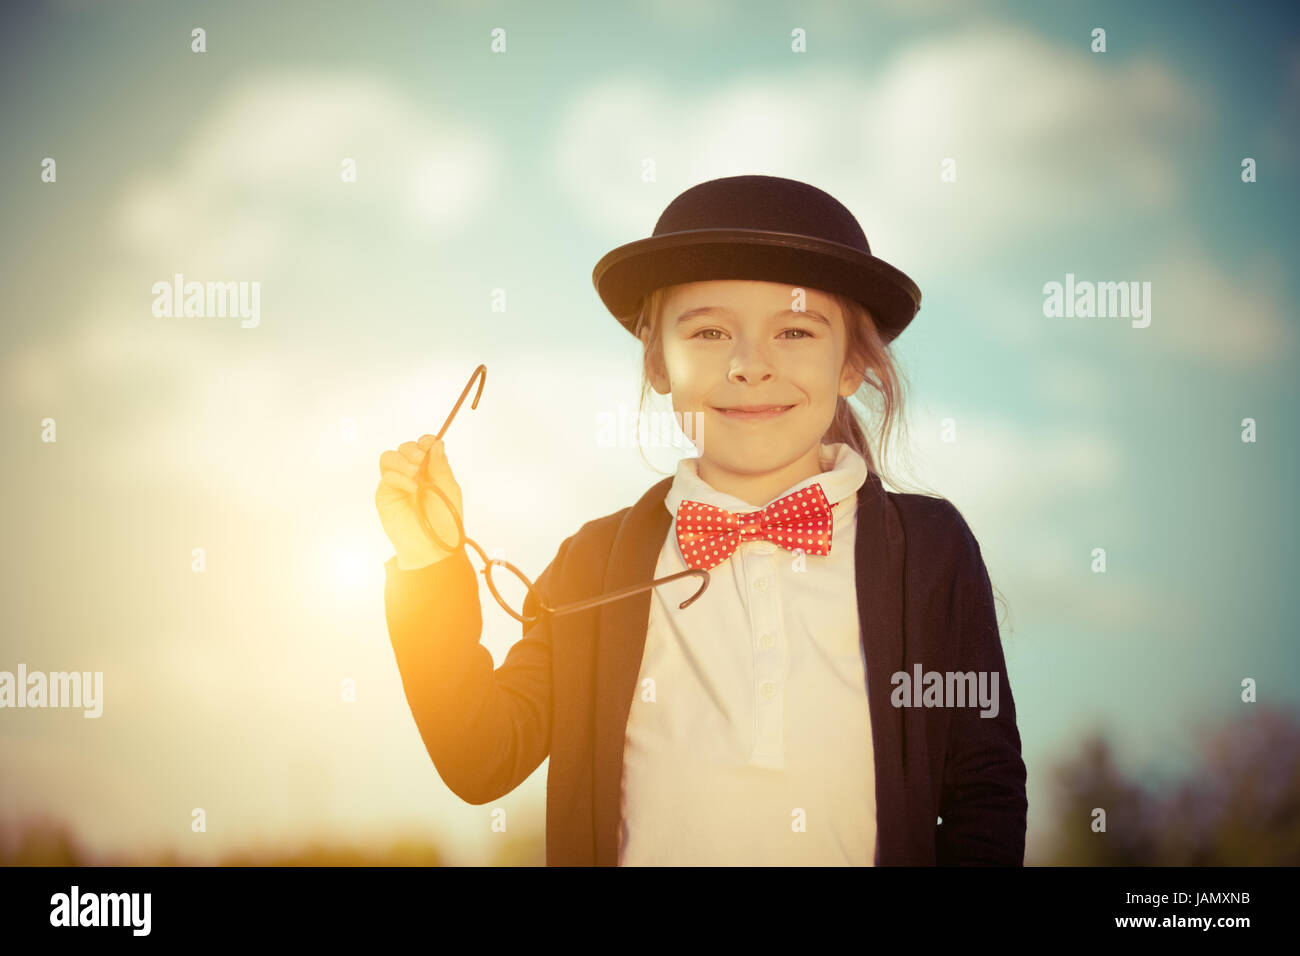 Funny little girl in bow tie and bowler hat. - Stock Image